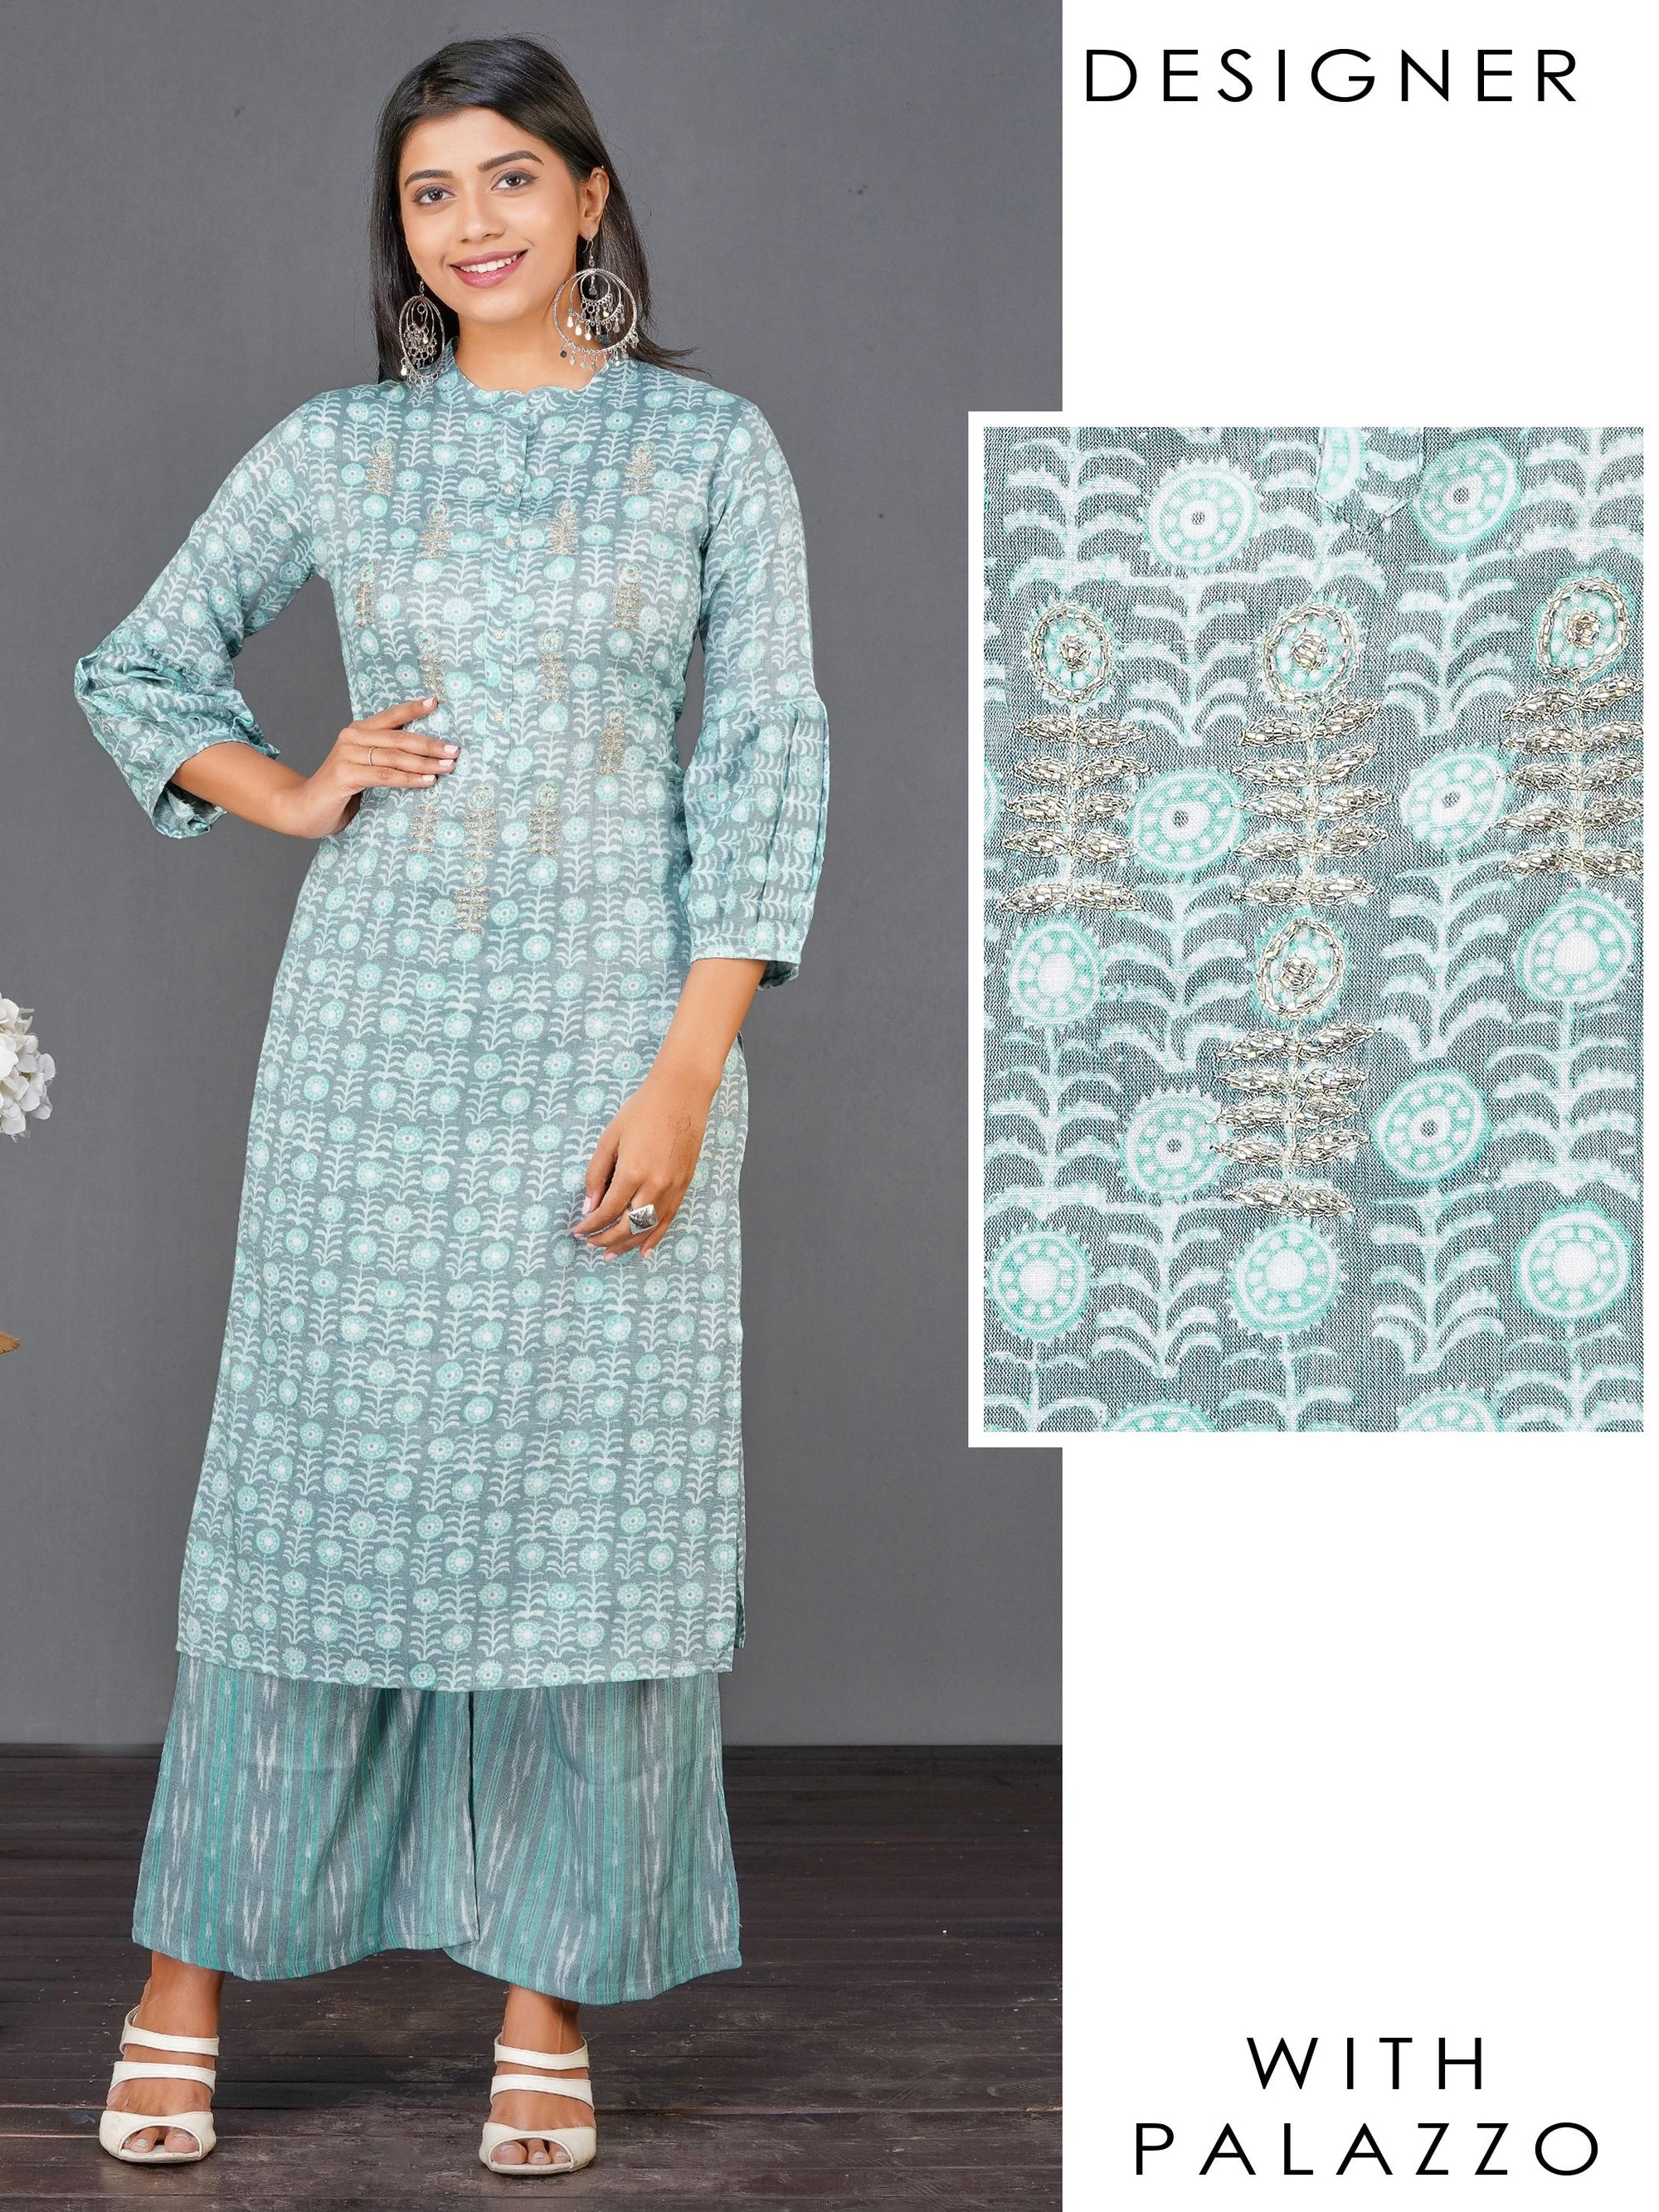 Floral Printed, Cutdana Embellished Kurti & Vertical Striped Palazzo Set – Powder Blue